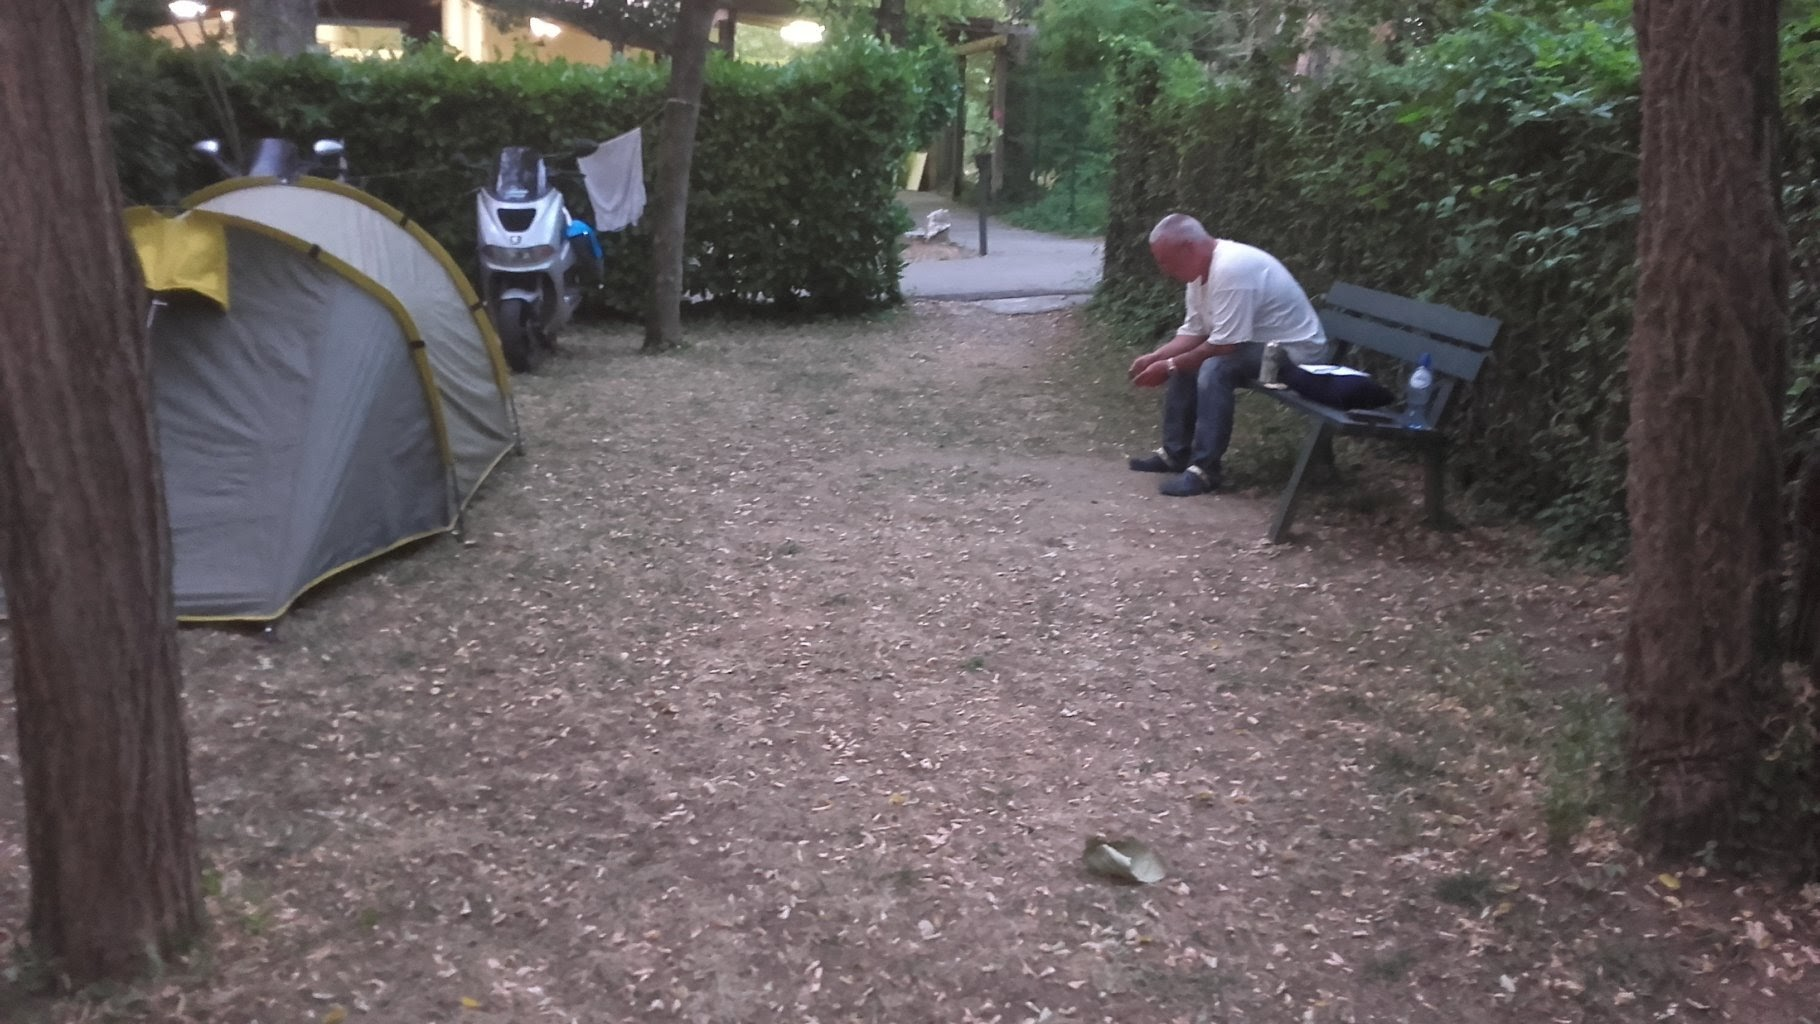 Scooter vakantie rit 2016 River camping